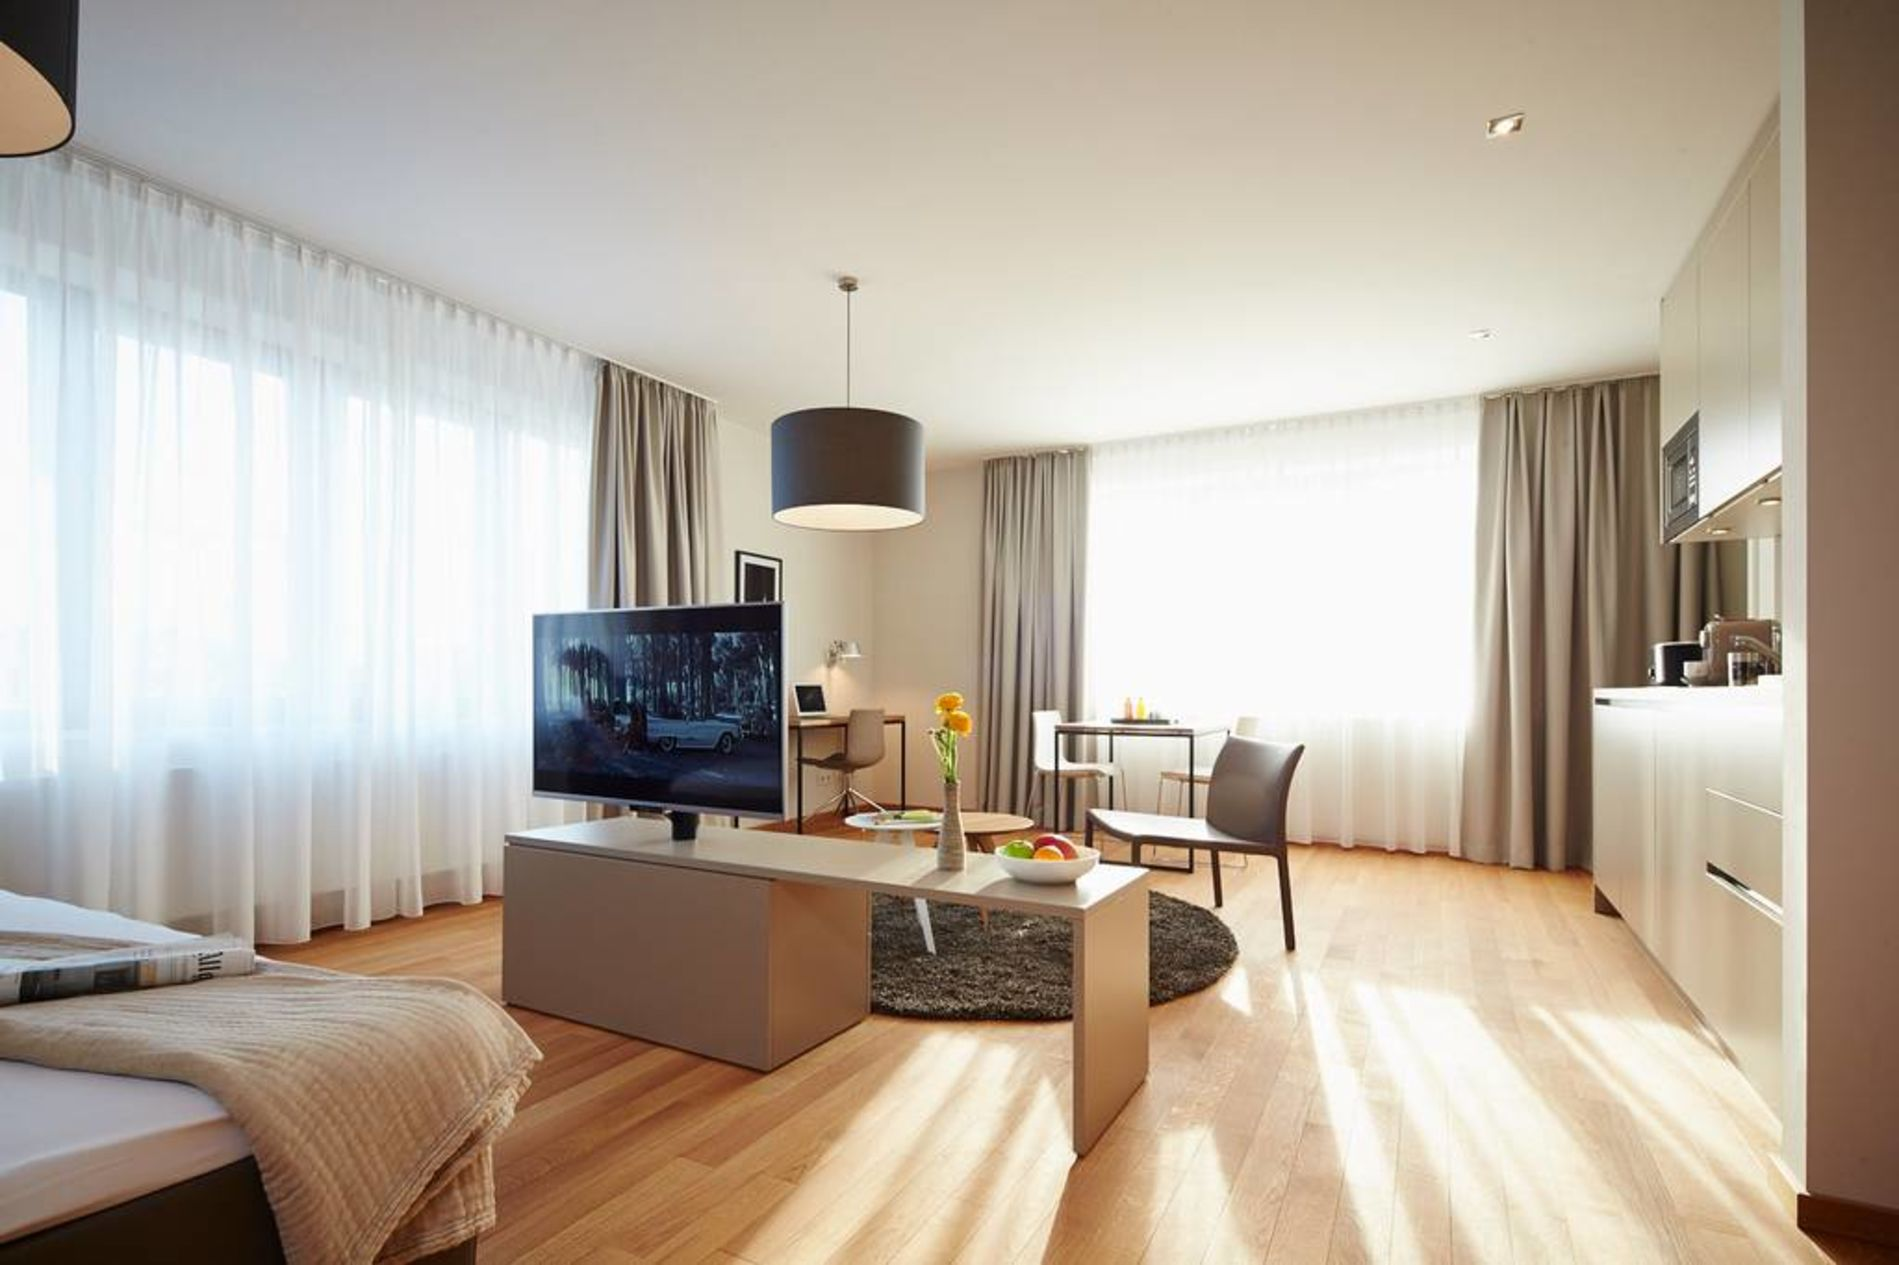 Serviced apartment in Frankfurt for long term stay of 6 months and above